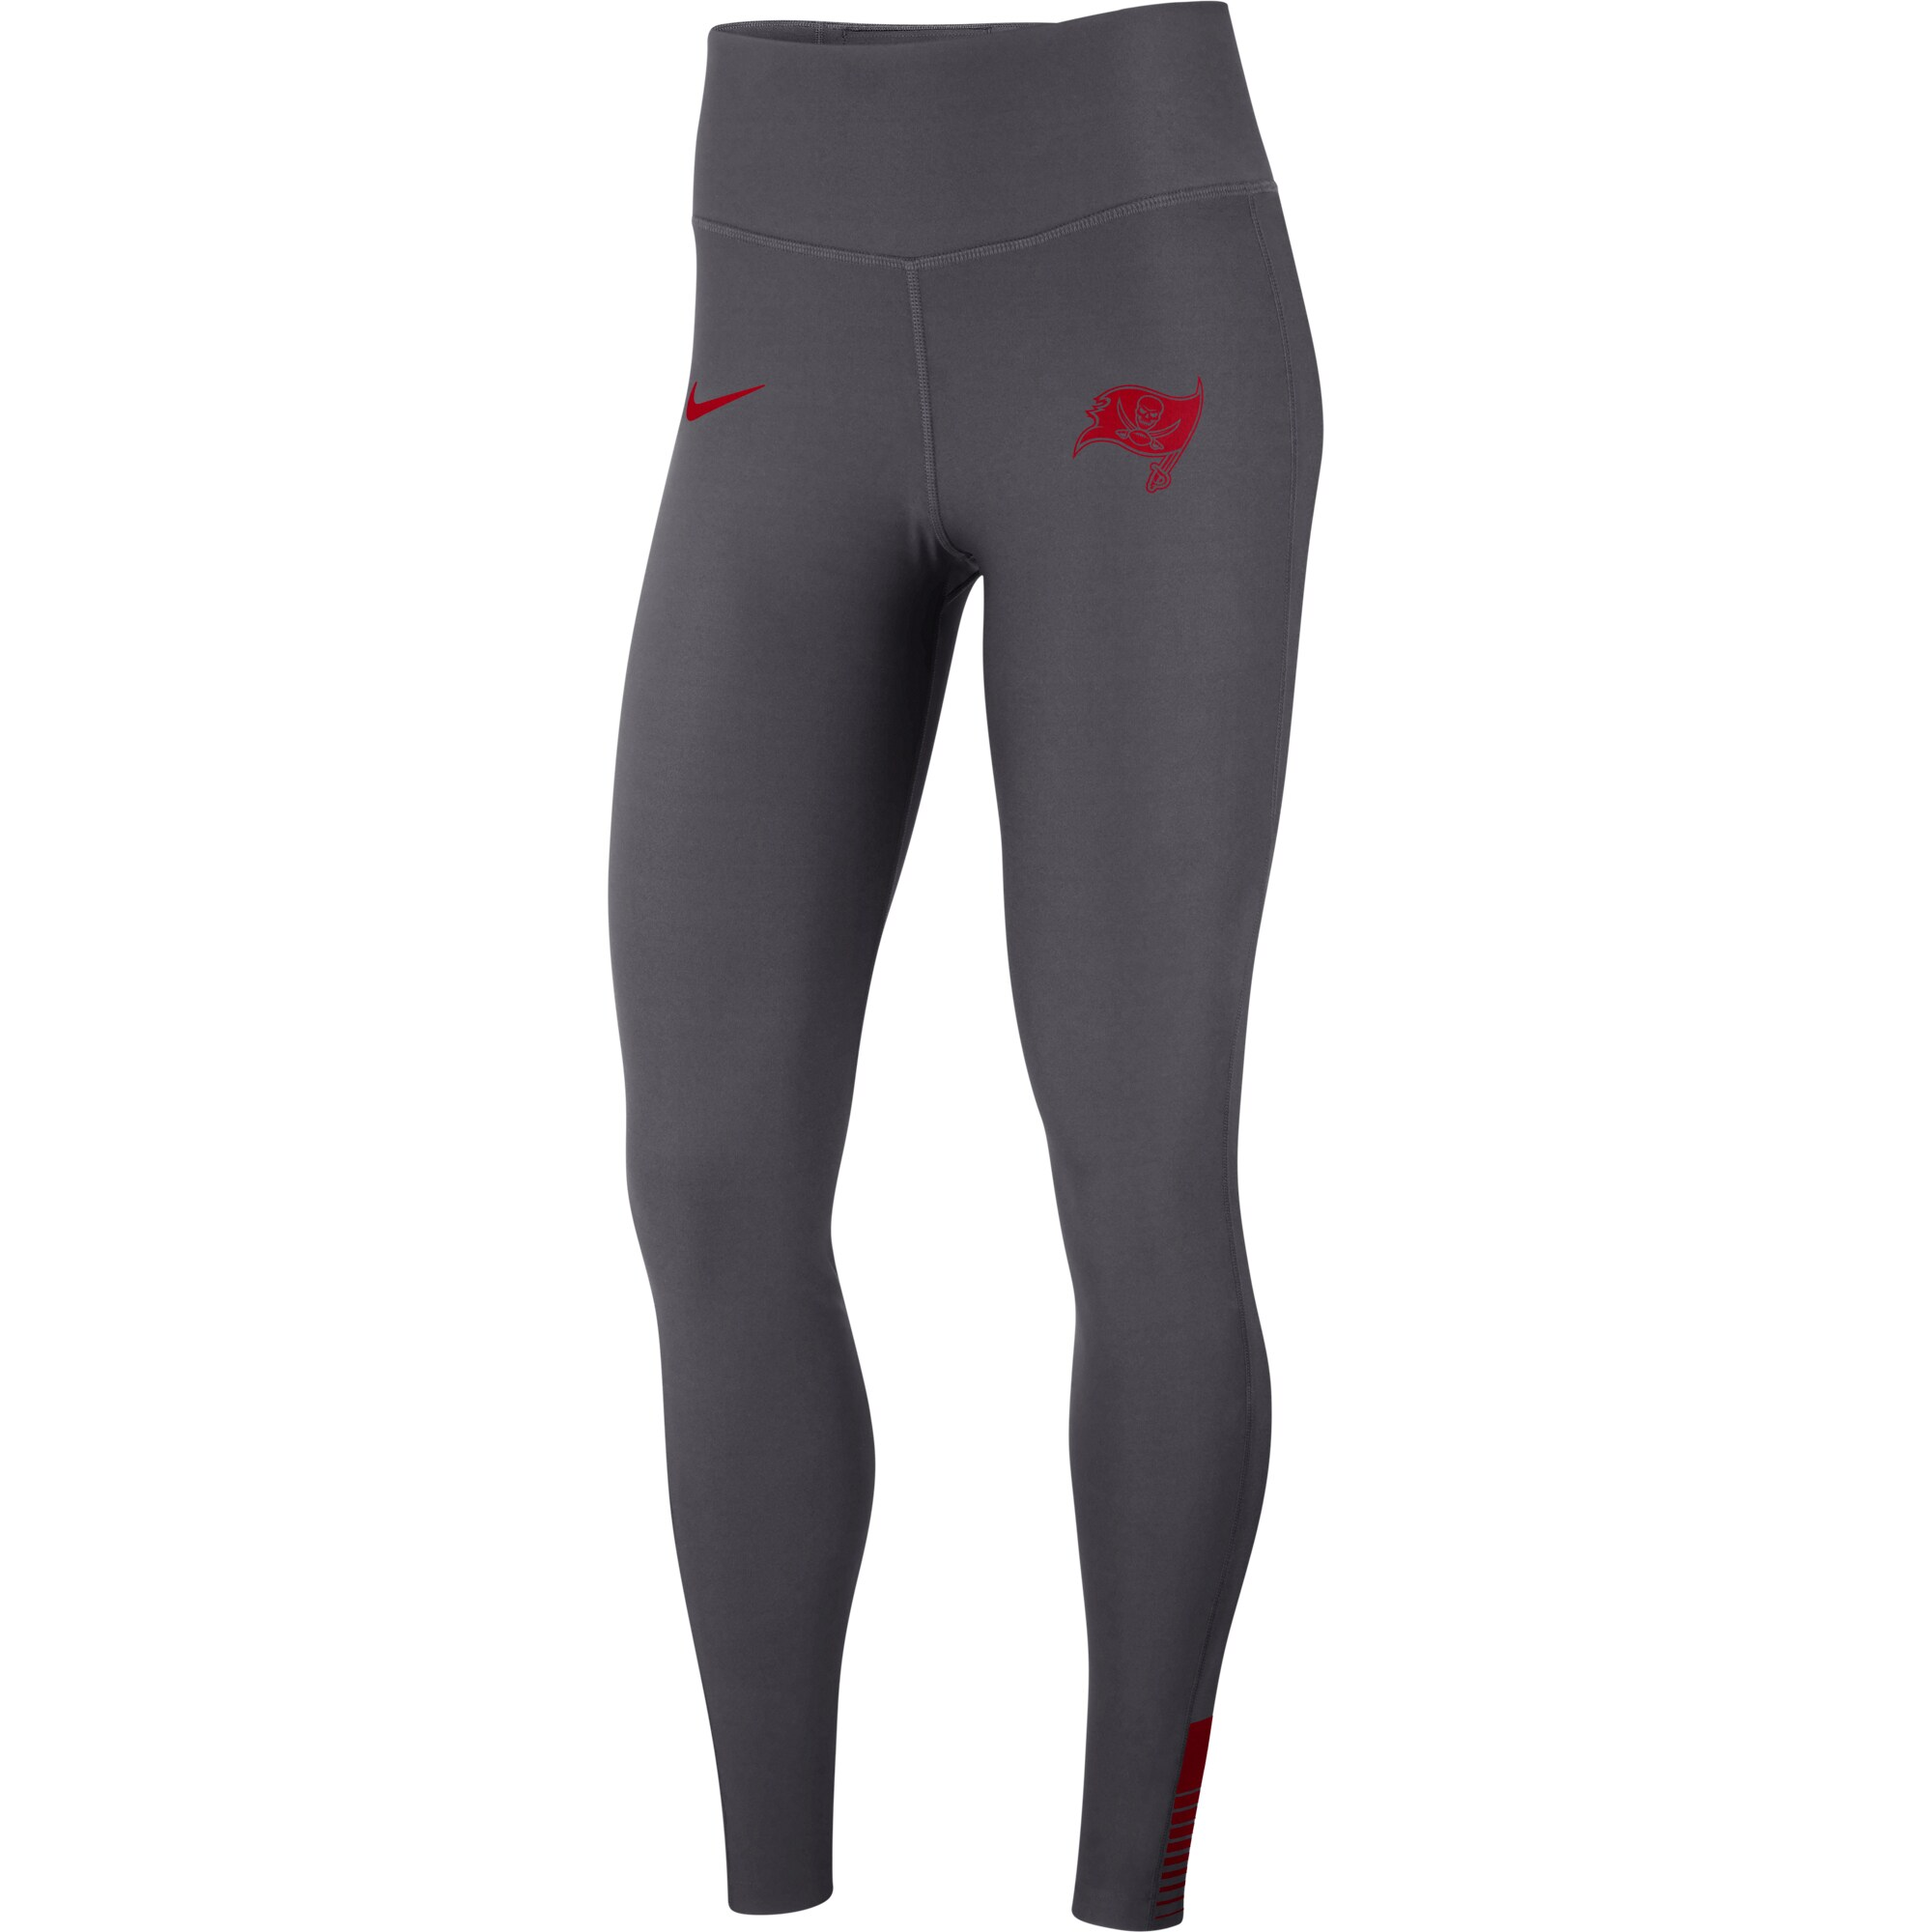 Tampa Bay Buccaneers Nike Women's Power Sculpt Leggings - Gray